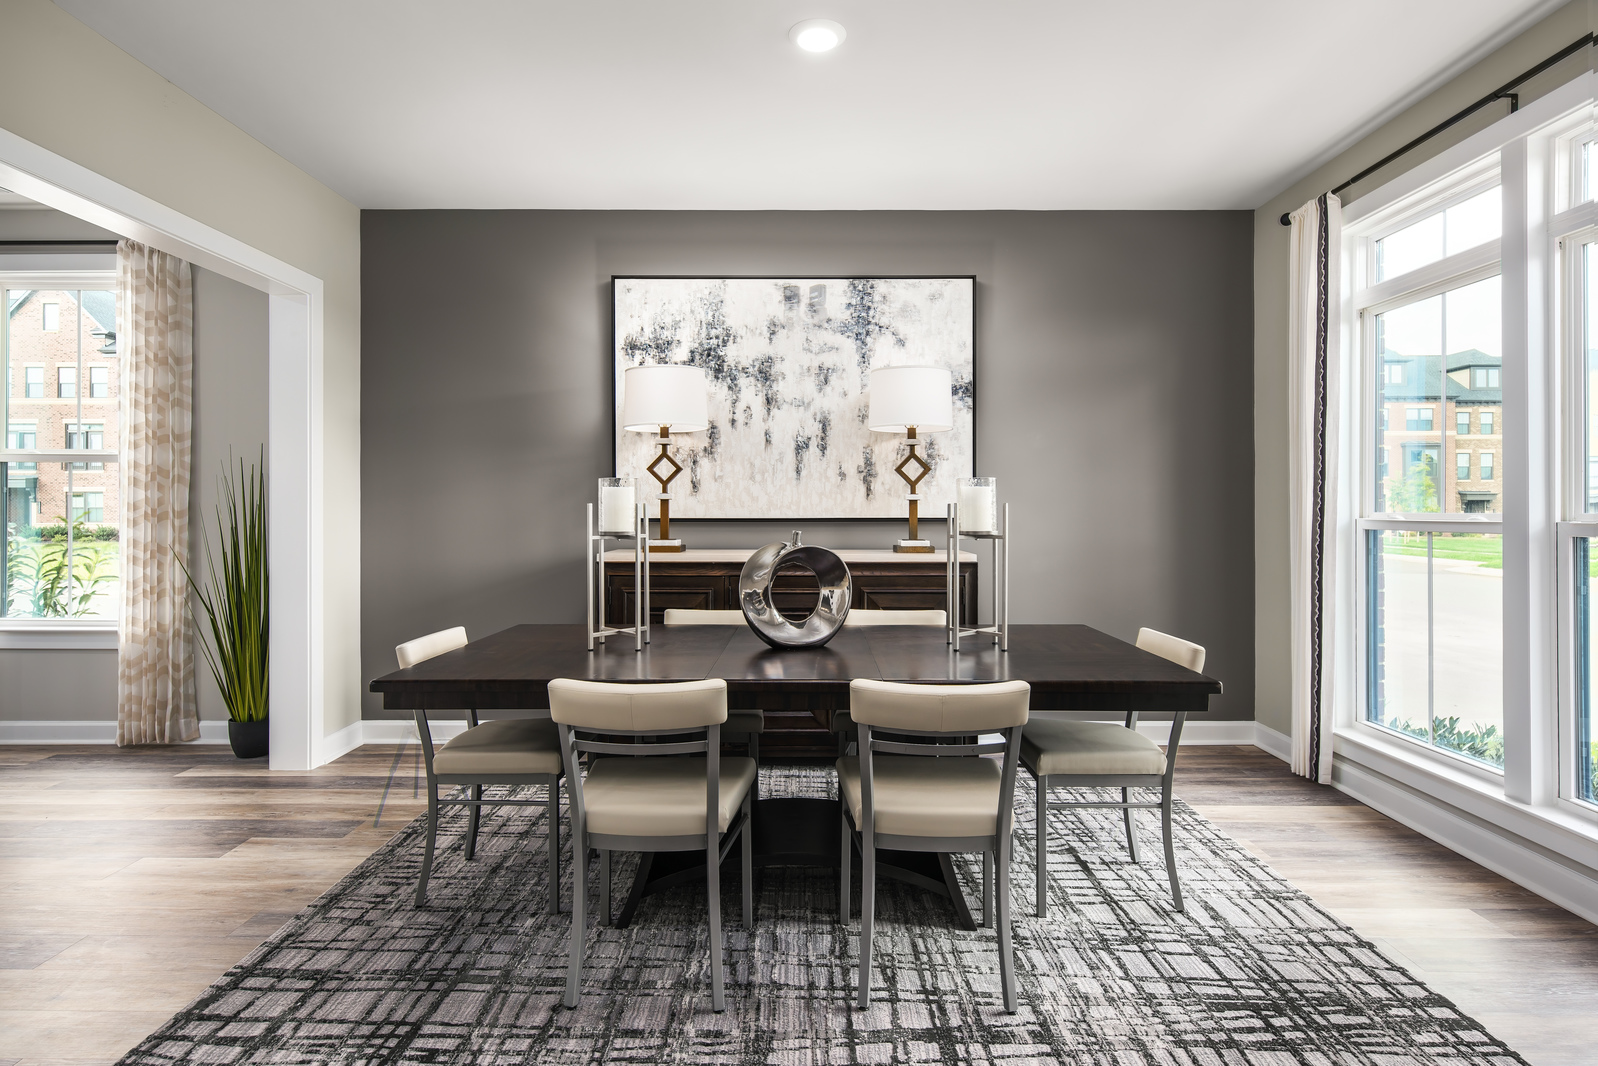 With options for both formal and informal dining, the Westmoore Villas offer complete luxury without an ounce of compromise.